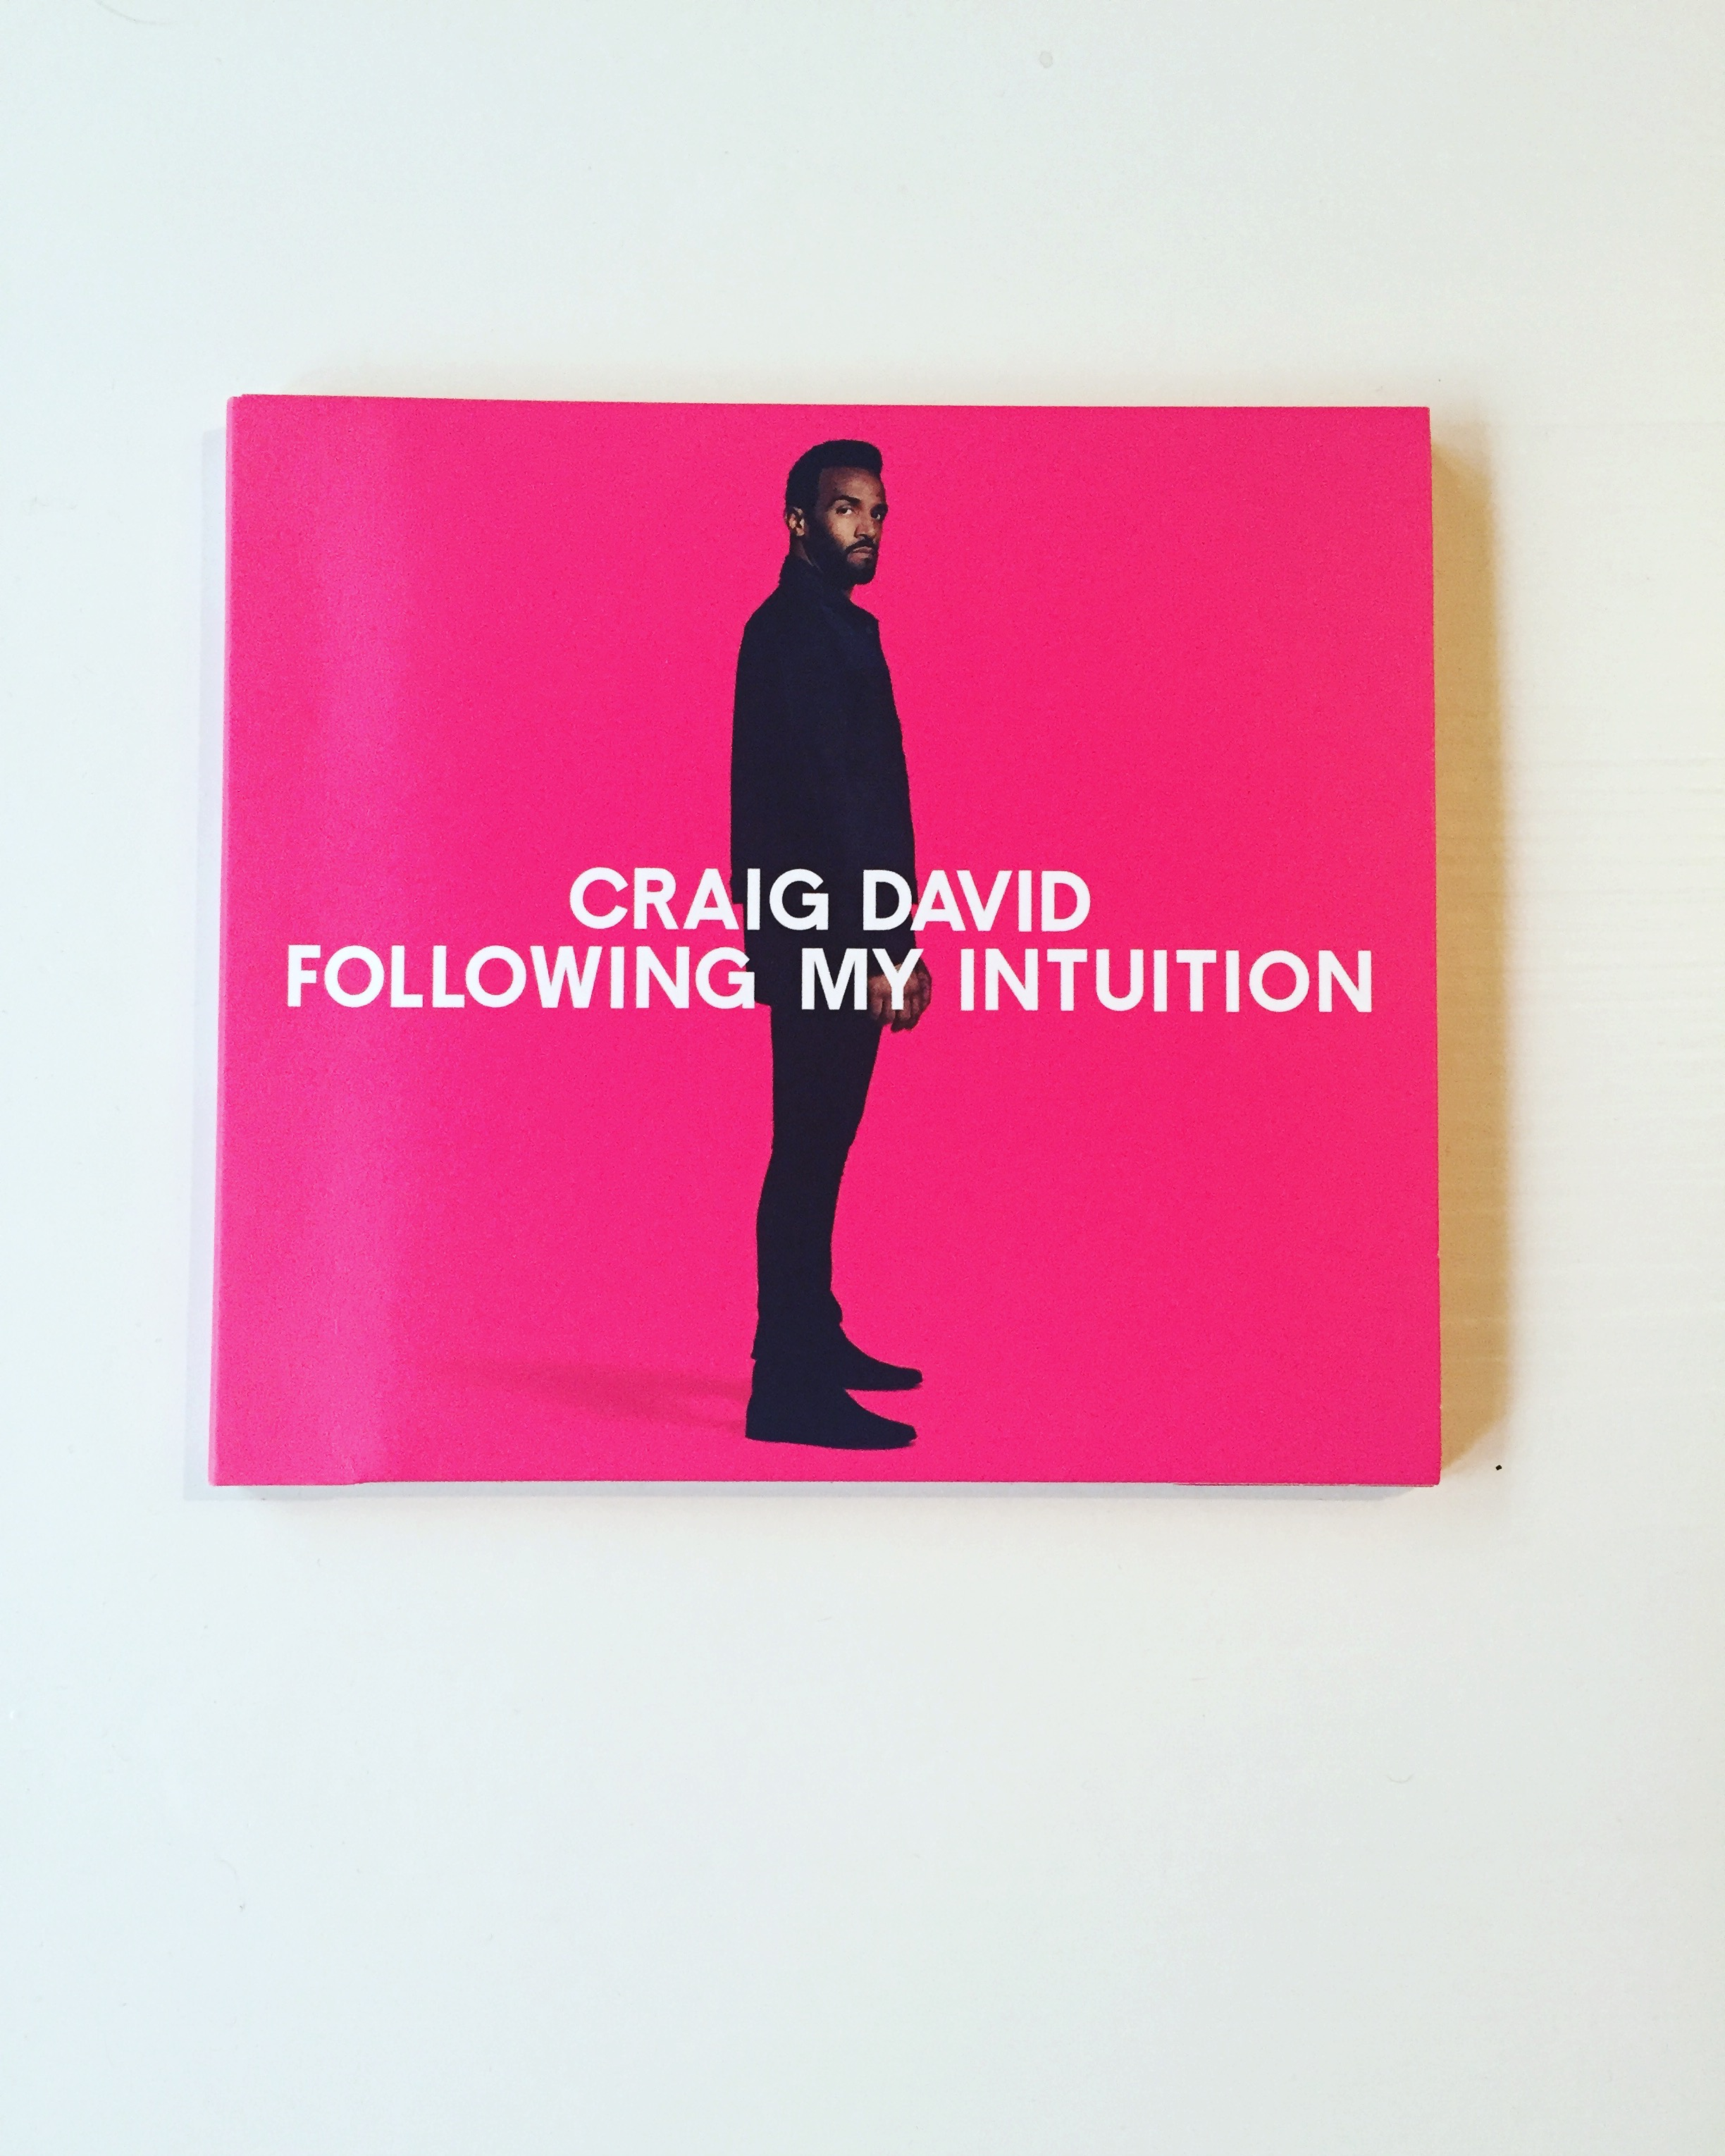 He is back…Craig David